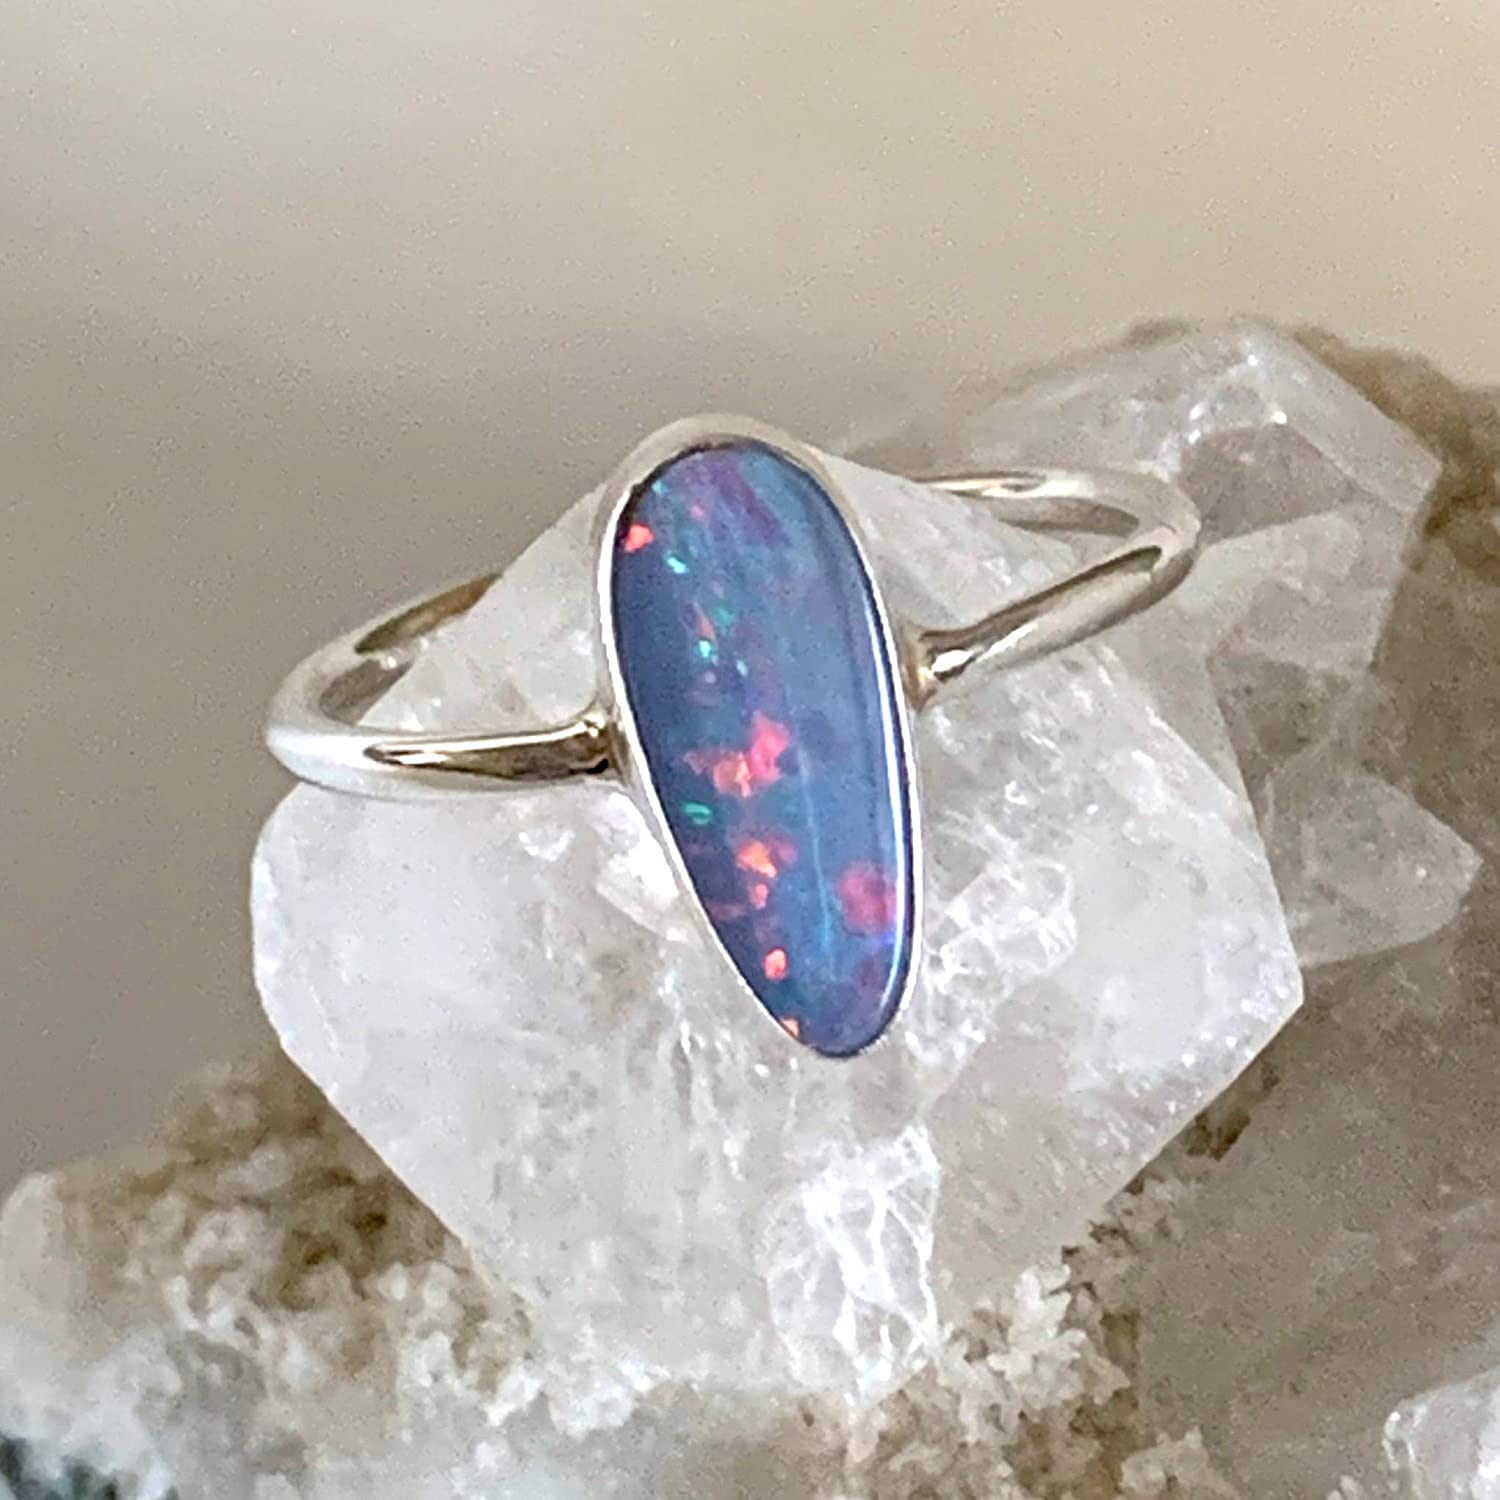 Sz 7.25, Genuine Blue AUSTRALIAN OPAL Doublet 12 x 5mm Natural Gemstone, 925 Sterling Silver, Solitaire Ring Handmade Jewelry.